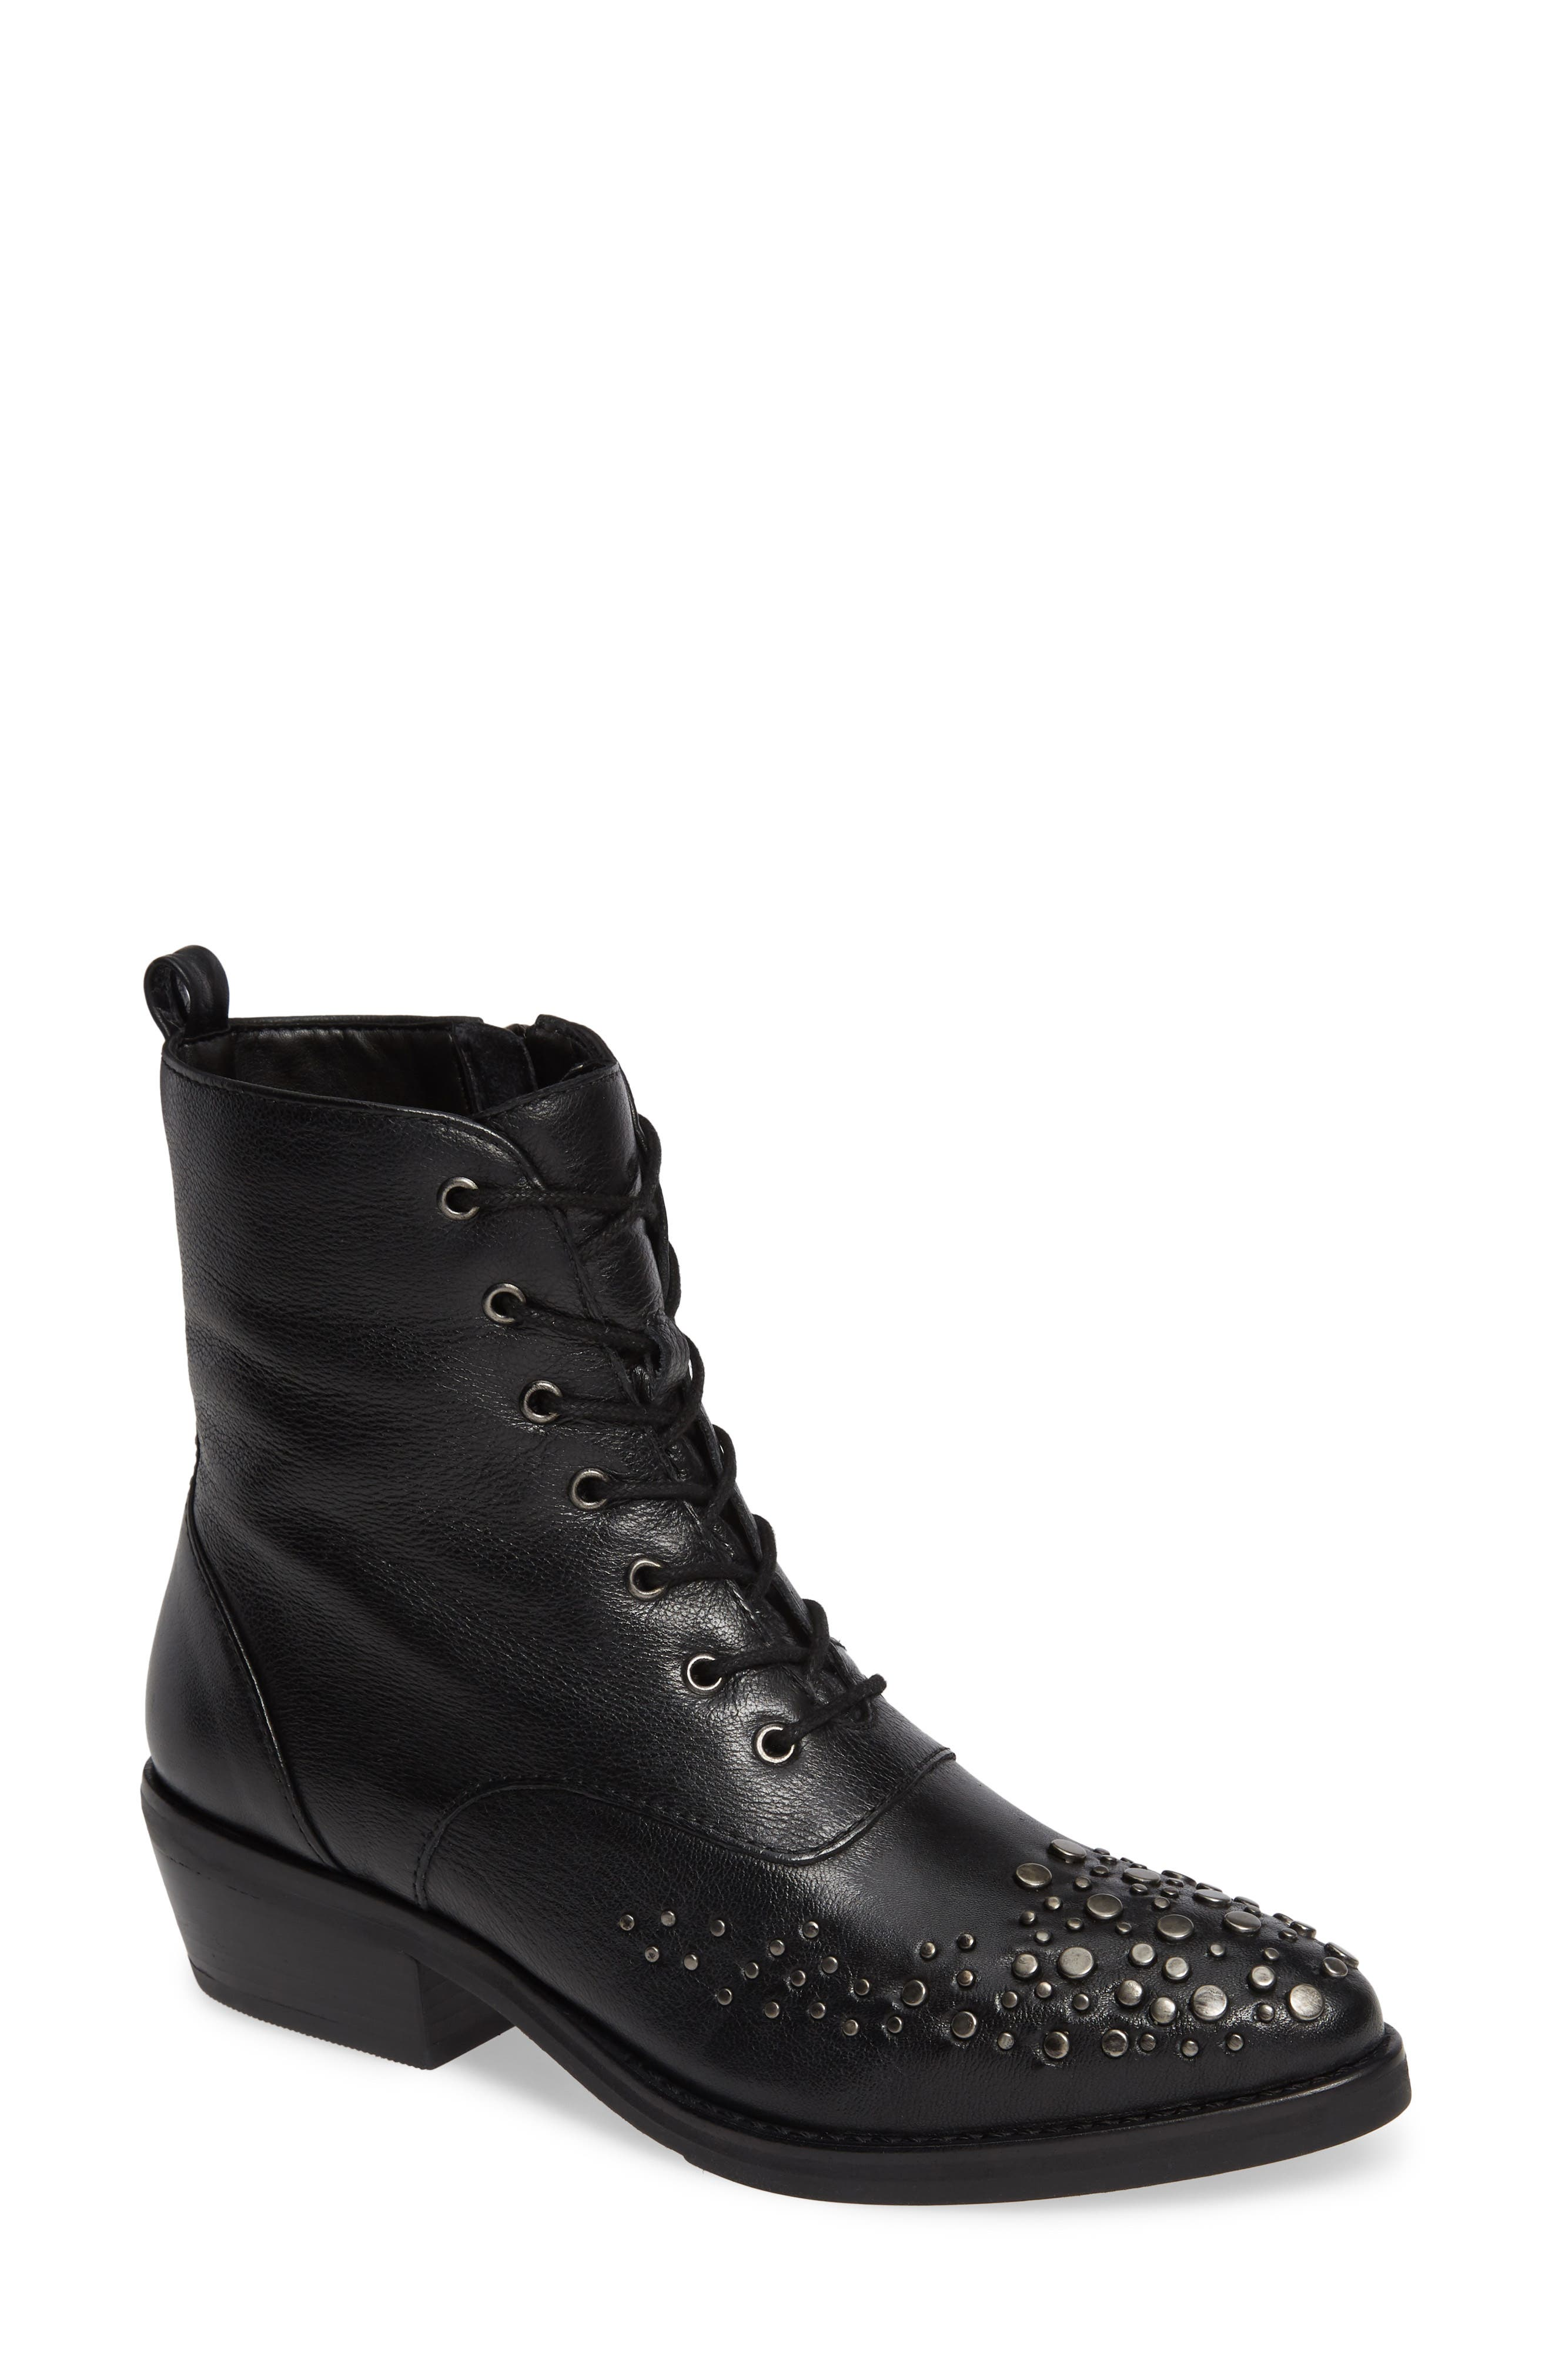 LUST FOR LIFE Portland Boot in Black Leather